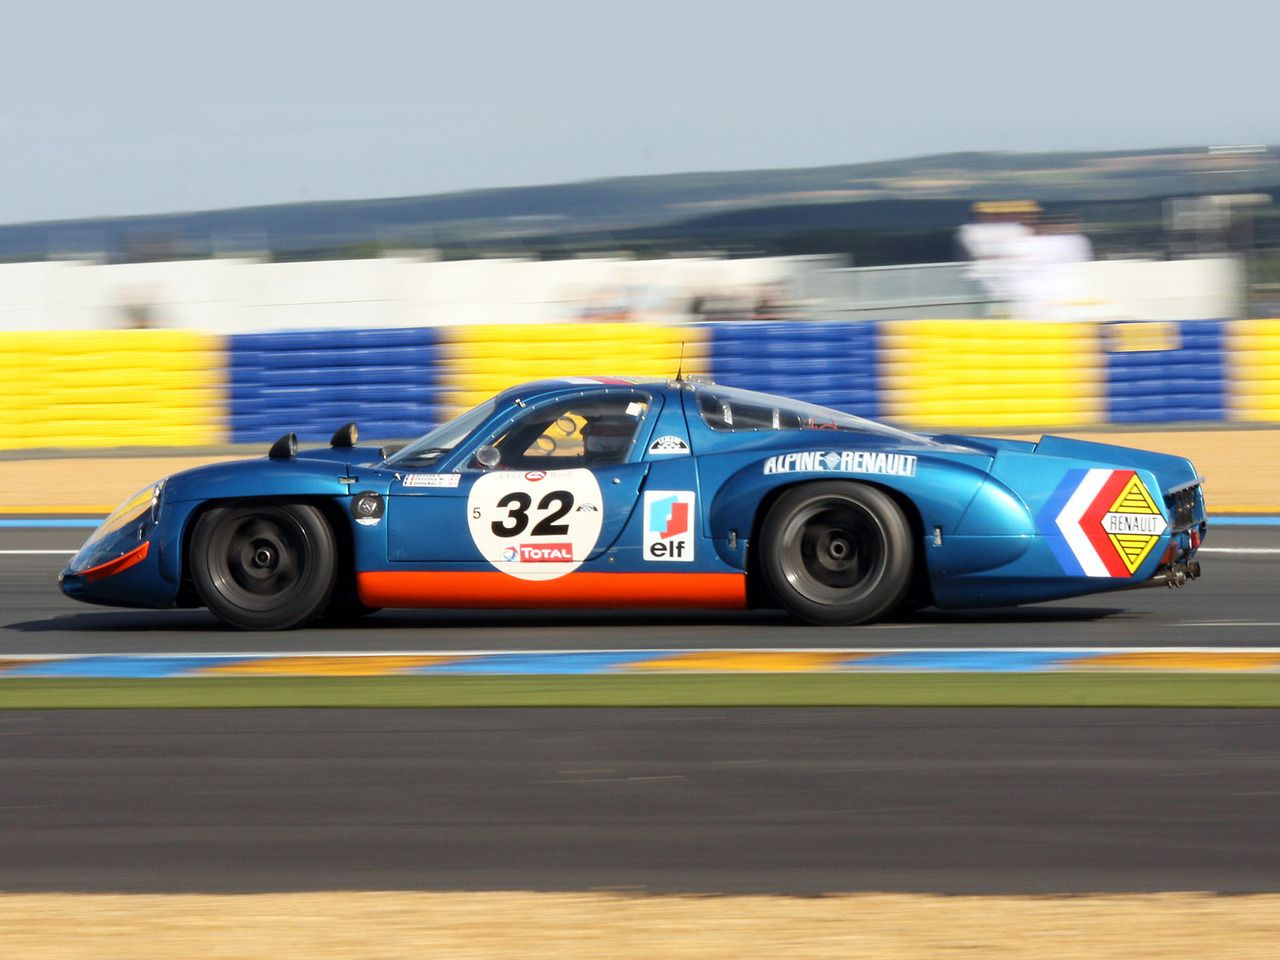 1966 renault alpine a210 carreras pinterest cars race cars et racing. Black Bedroom Furniture Sets. Home Design Ideas